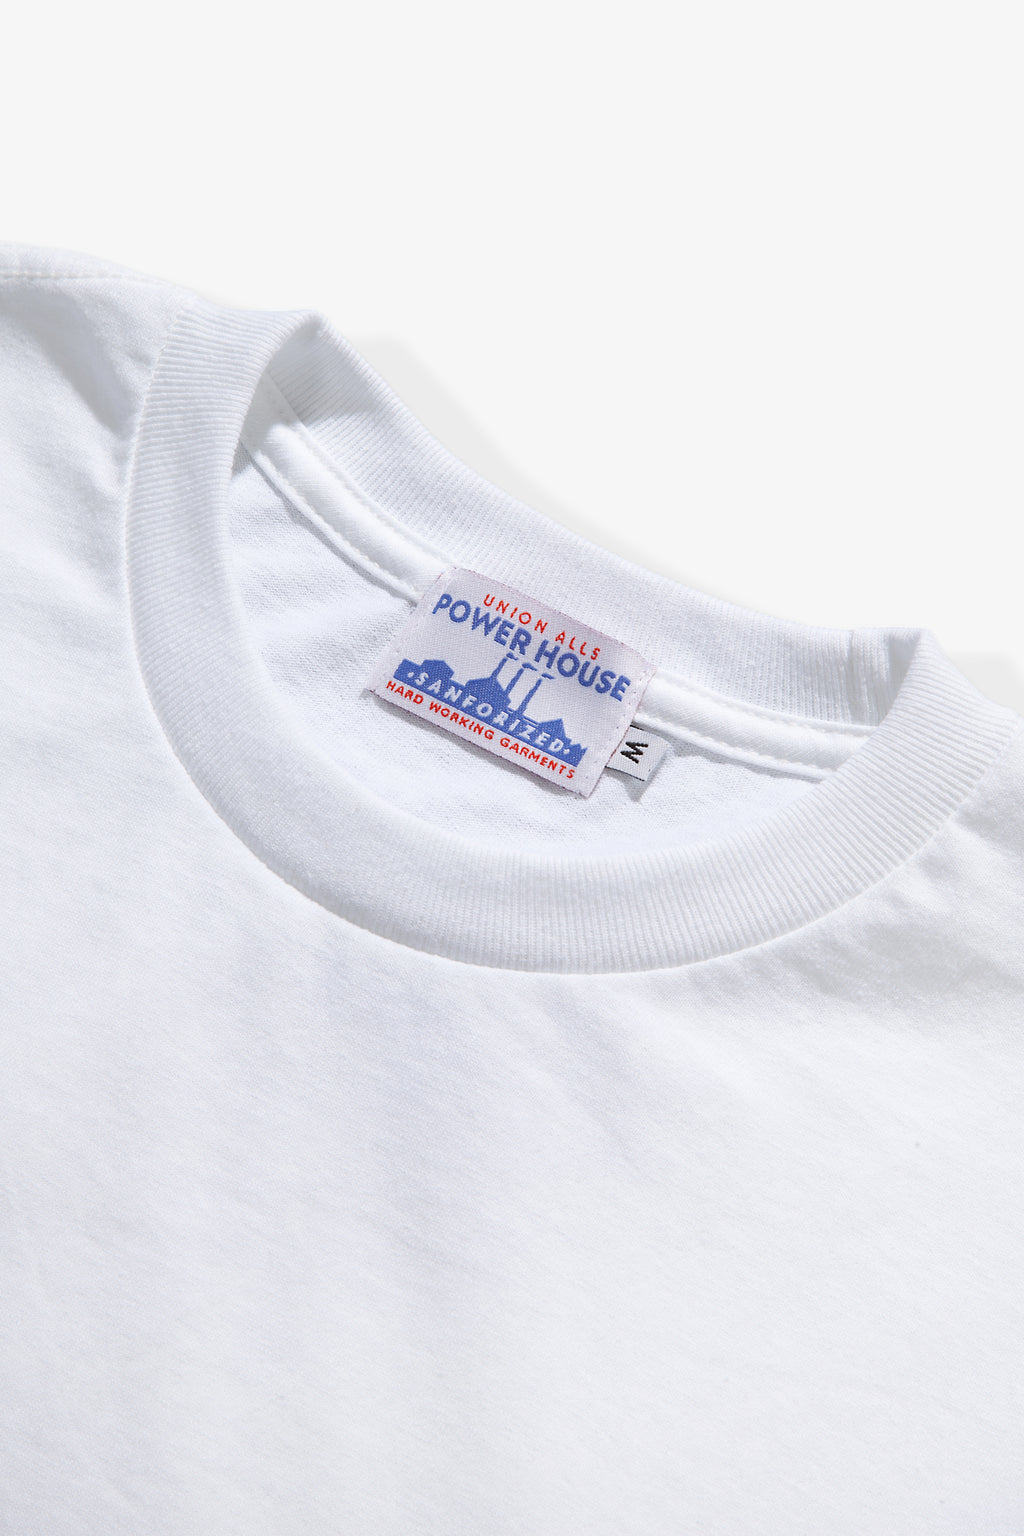 Power House - Everyday T-Shirt - White